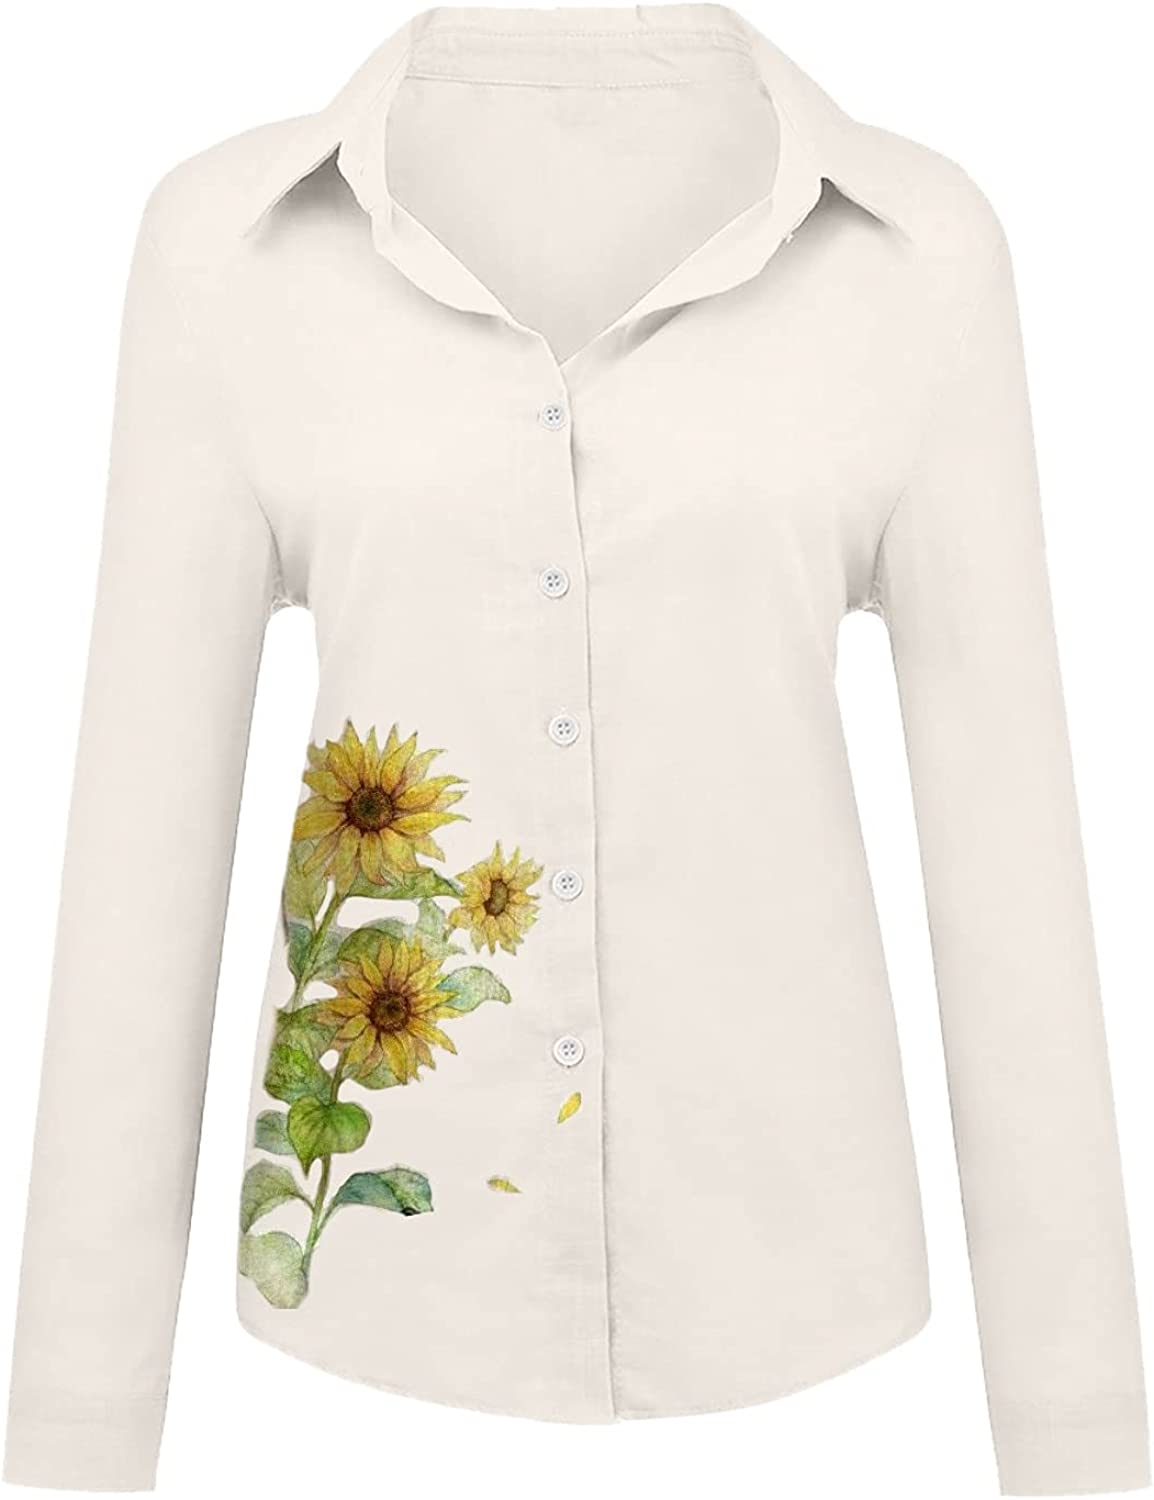 Women's Long Sleeve Shirts Cotton Linen Blouse Tops Loose Casual Dragonfly Print Button Shirt Comfortable Tees